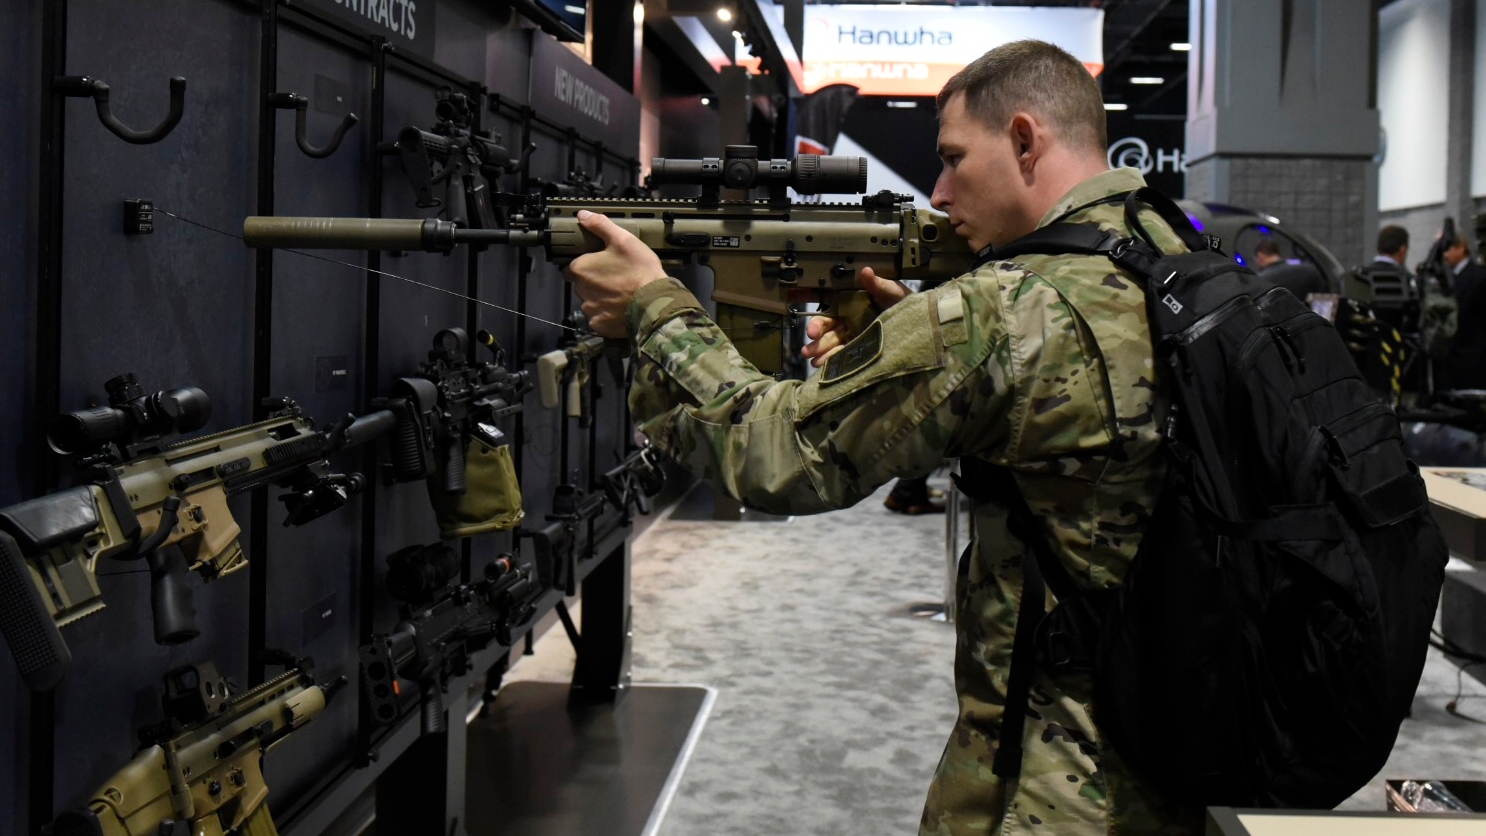 1Lt. Col. Steven Chadwick tries out a FN17 close quarter assault rifle by FN on display at the 2018 AUSA annual meeting and exposition in Washington, DC. (Stephen Barrett/Special to Defense News & Army Times)